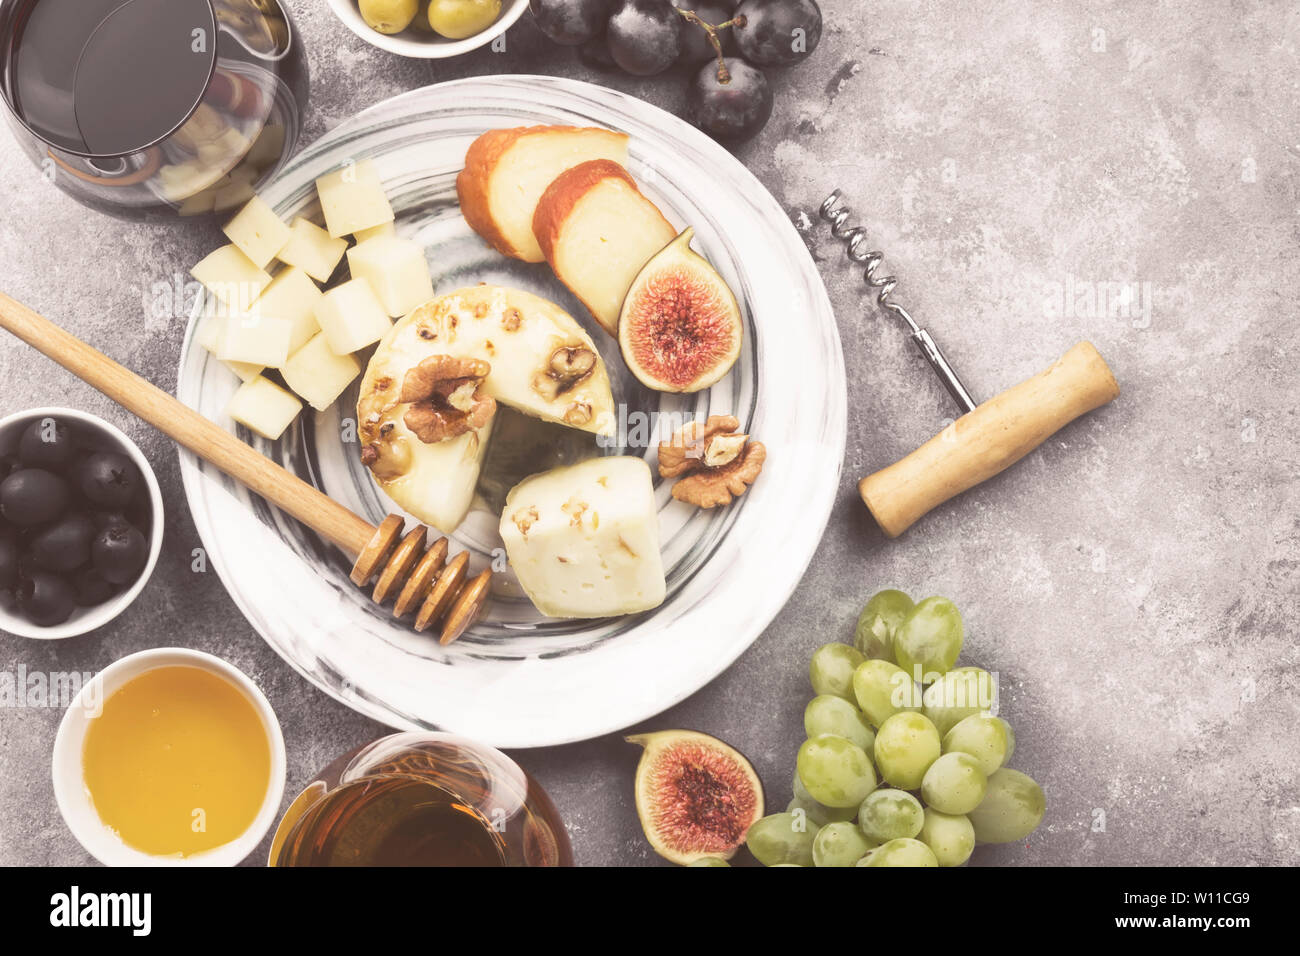 Snacks with wine - various types of cheeses, figs, nuts, honey, grapes on a gray background. Top view, copy space. Food background. Toned Stock Photo